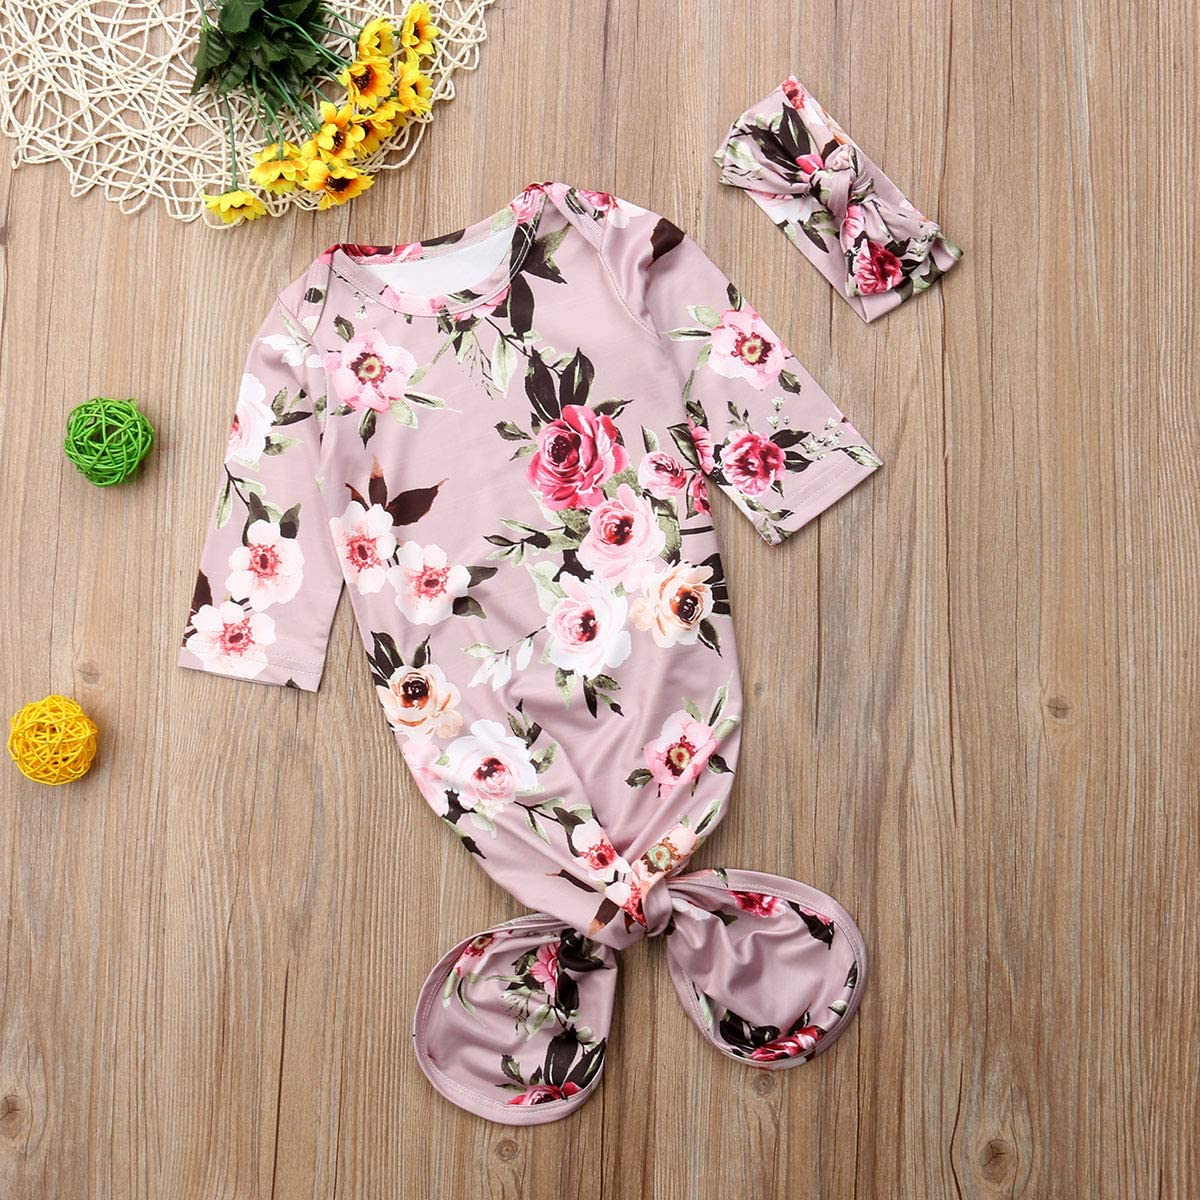 Baby Girls Floral Knotted Sleeper Gown Infant Romper Set Home Outfit with Headband